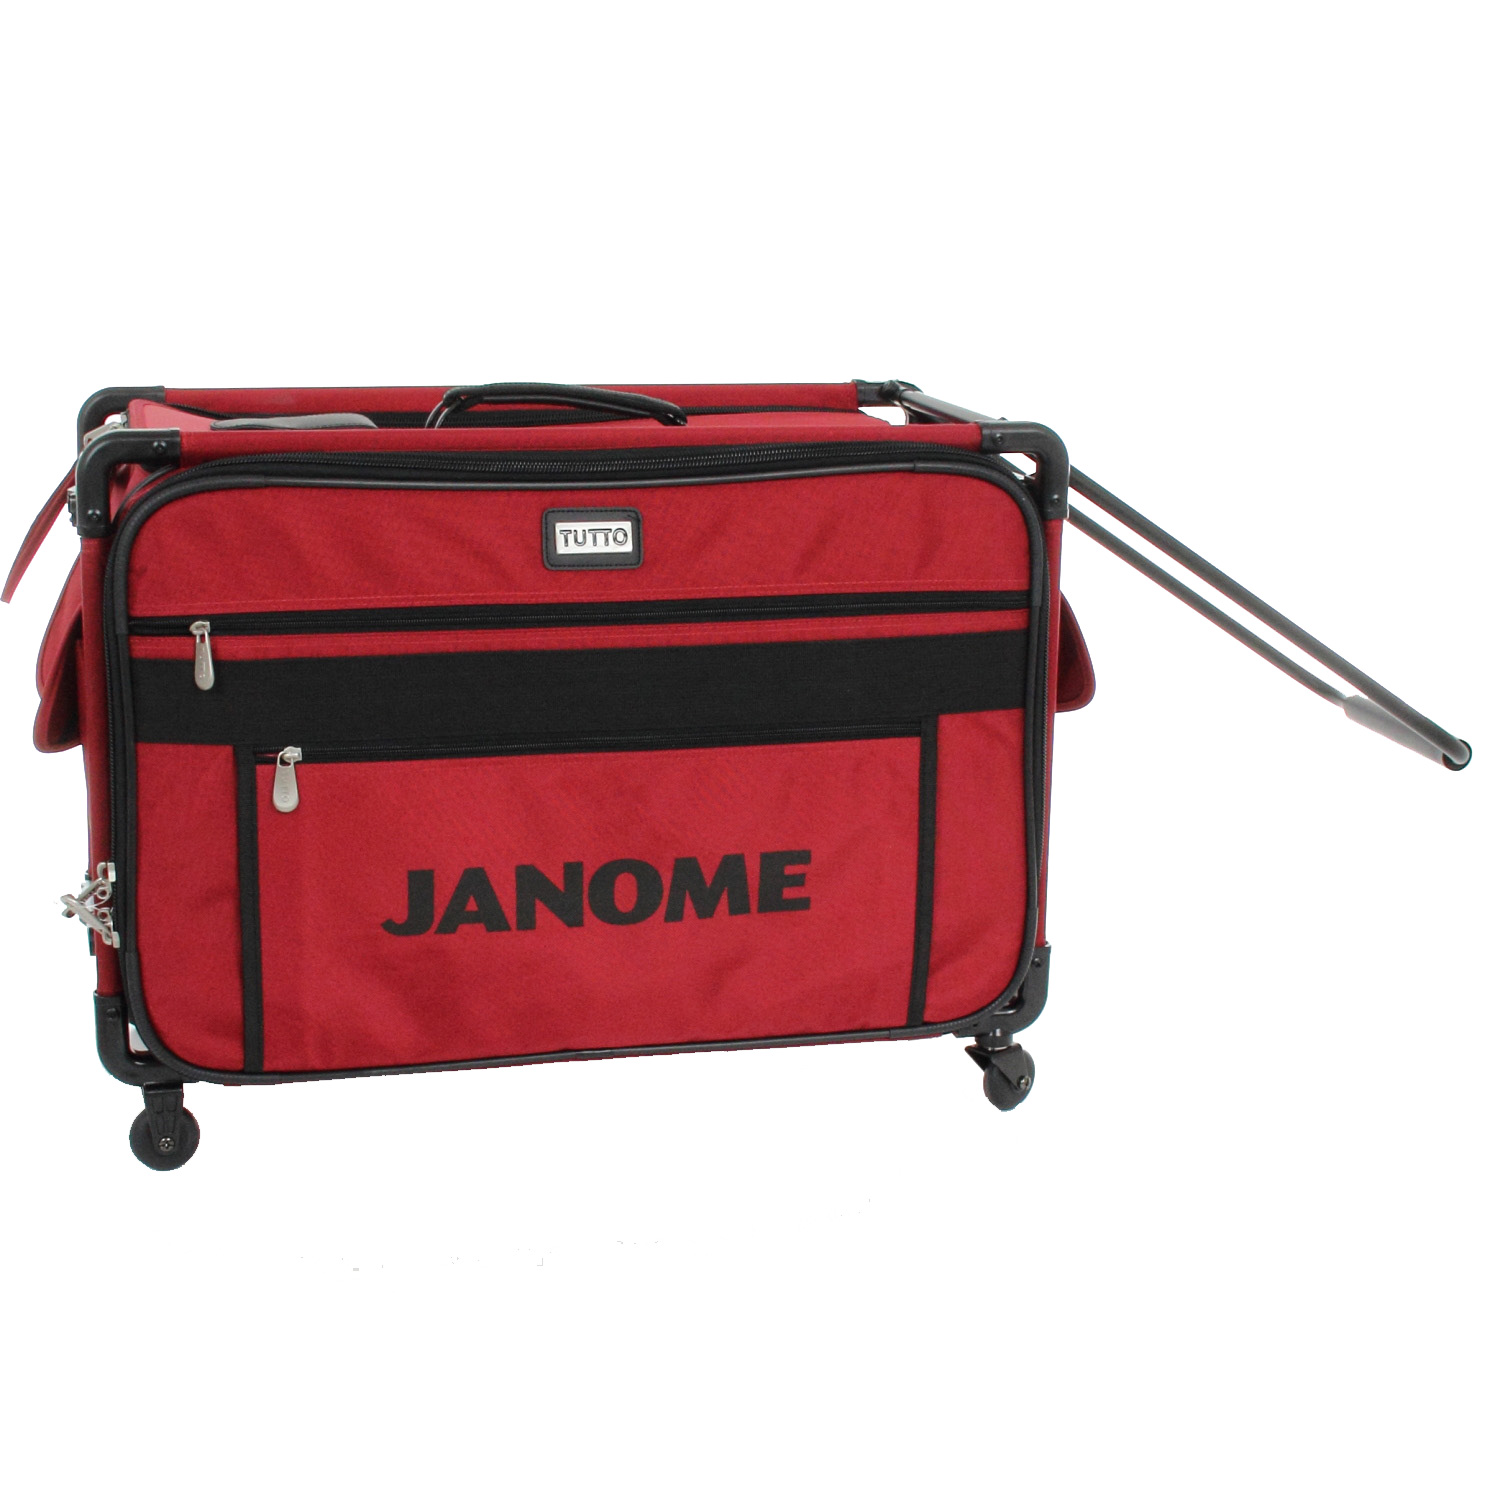 JANOME Trolley groß